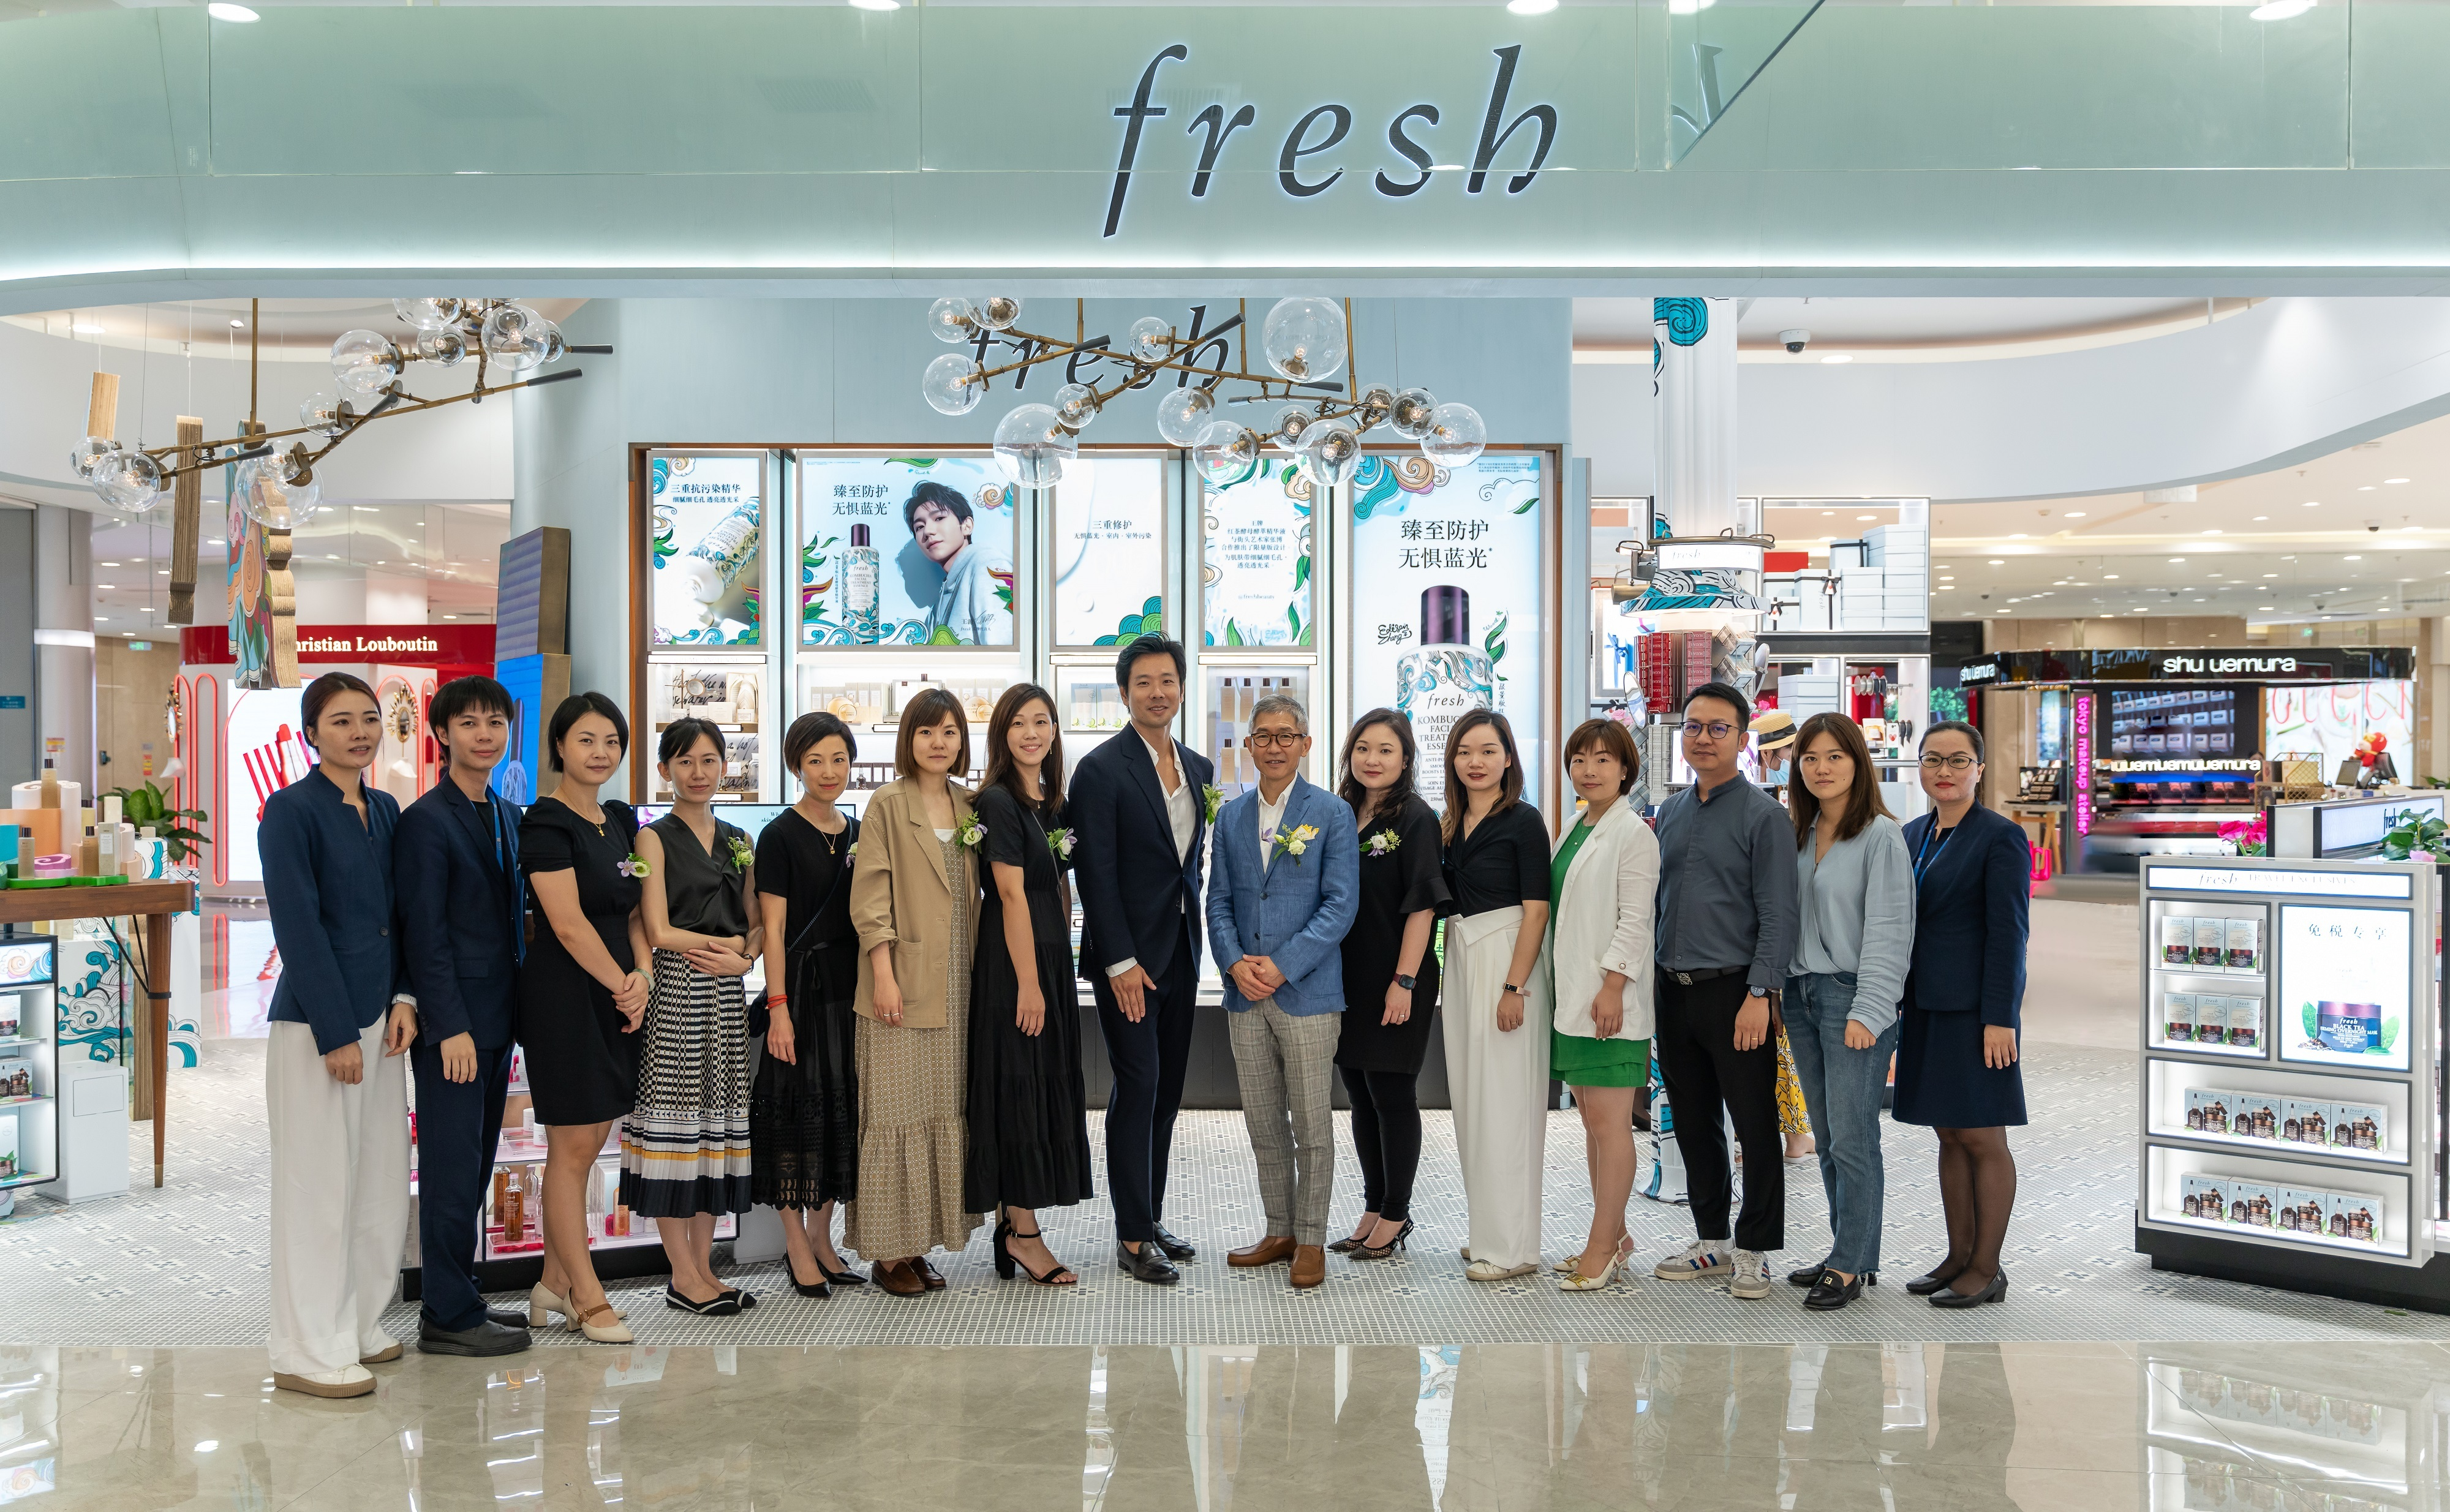 FRESH ANNOUNCES THE MEGA OPENING OF A NEW RETAIL STORE AT HAINAN TOURISM DUTY FRE